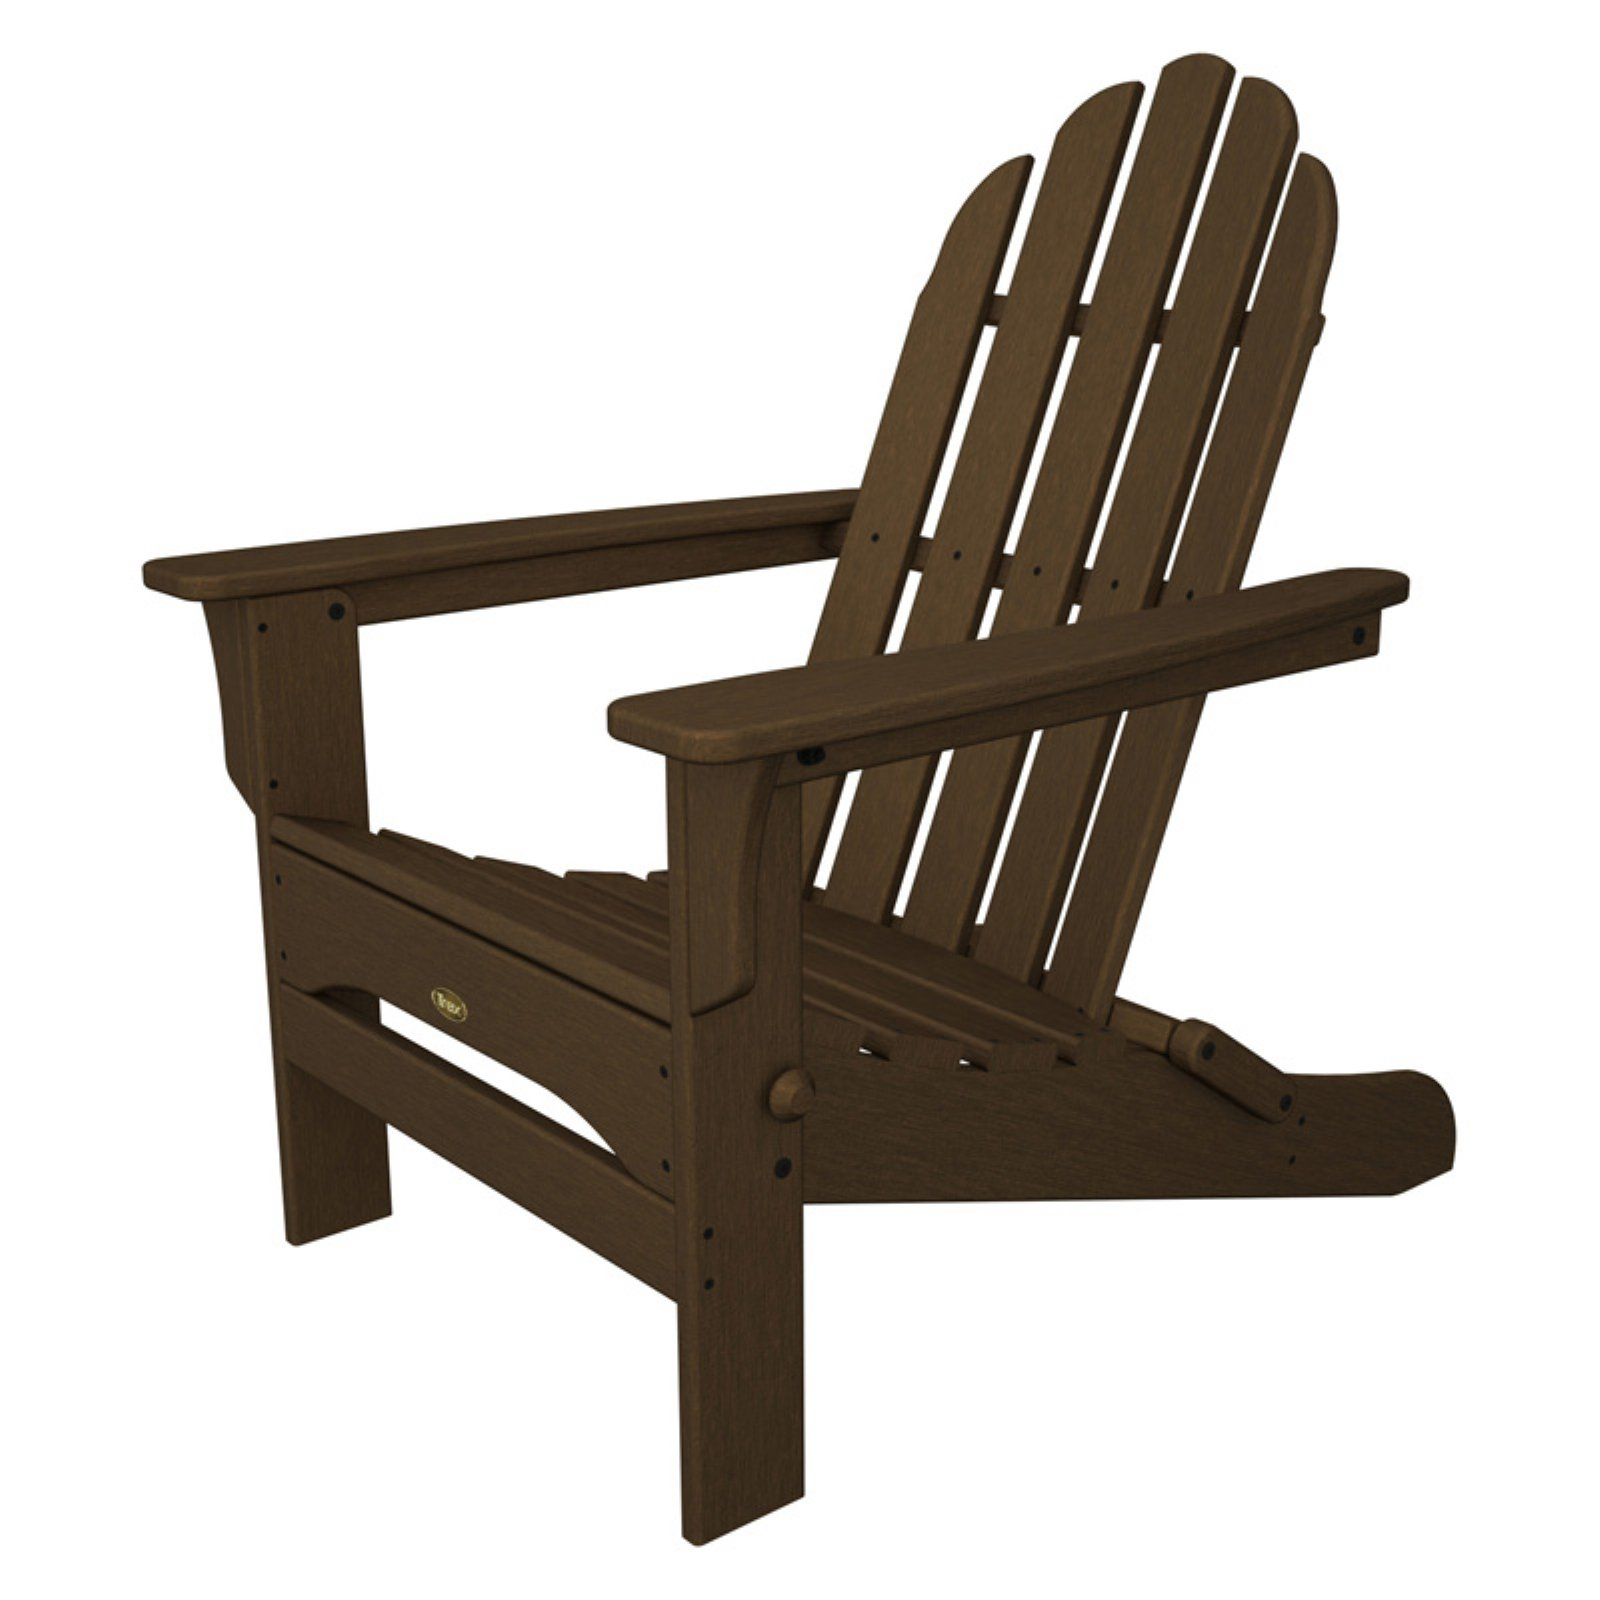 Trex Outdoor Furniture Recycled Plastic Cape Cod Folding Adirondack Chair by Trex Outdoor